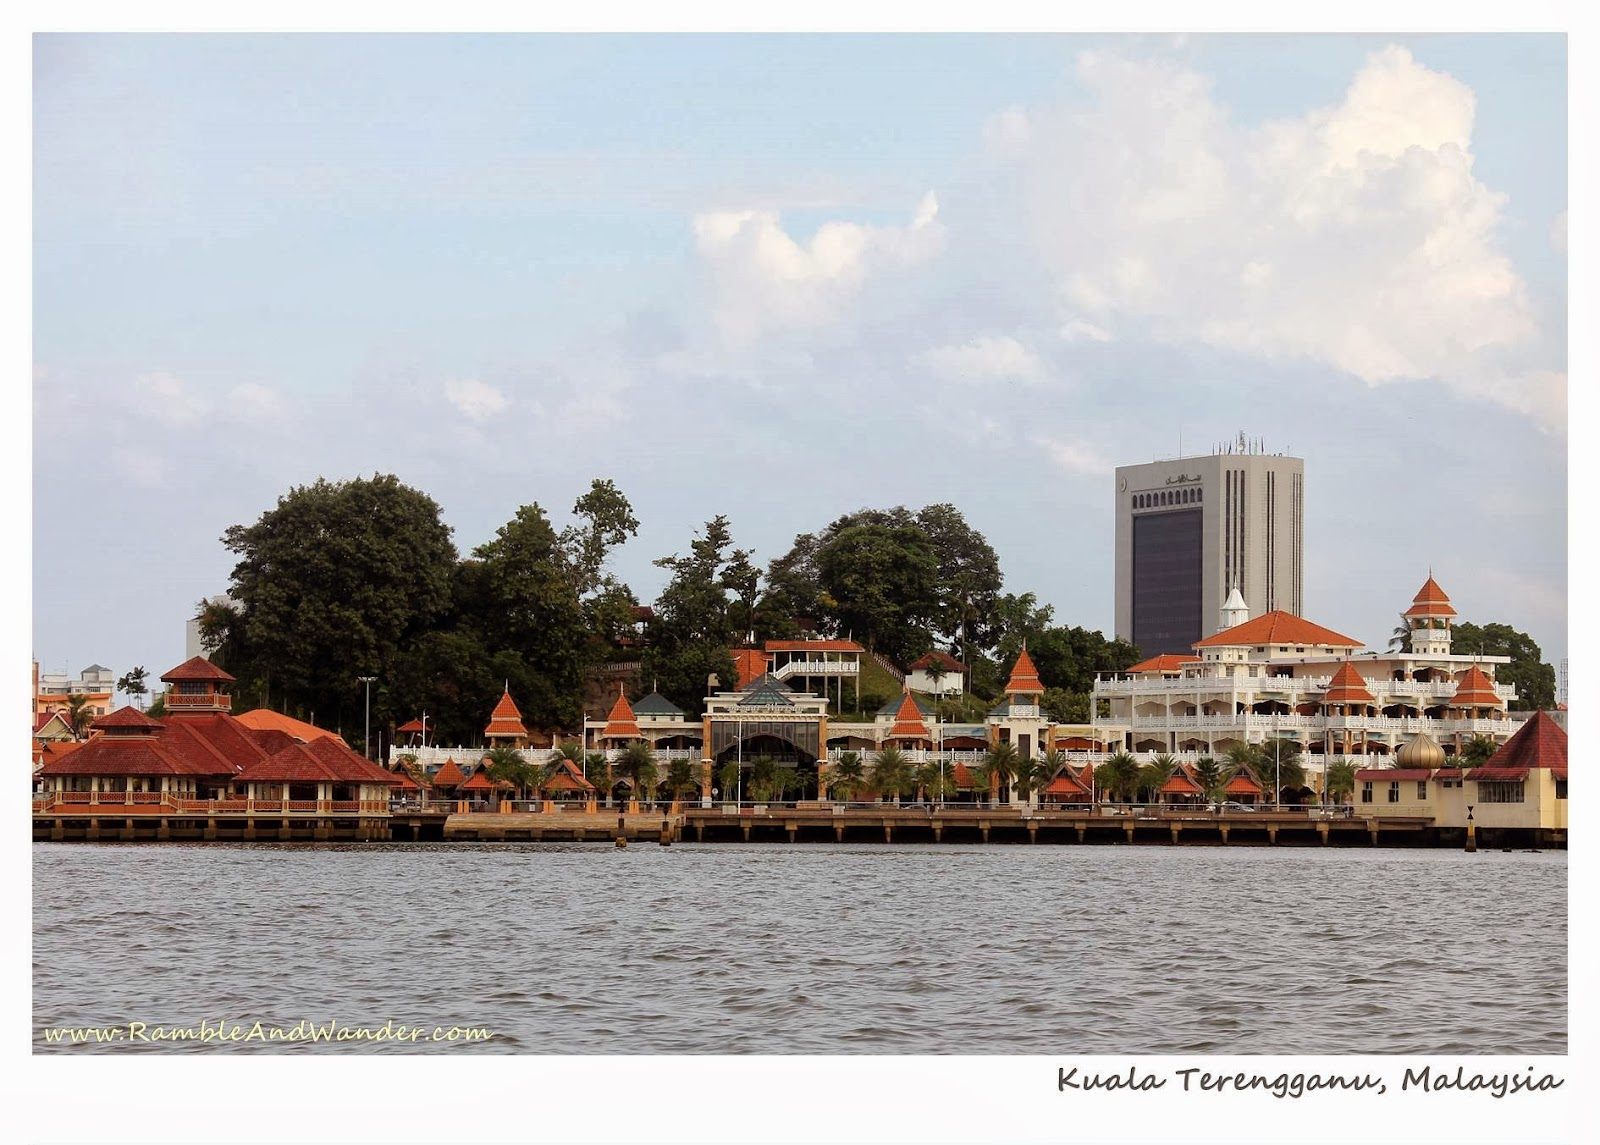 Malaysia: Top Things to Do and See in Kuala Terengganu – Where the Locals Dine